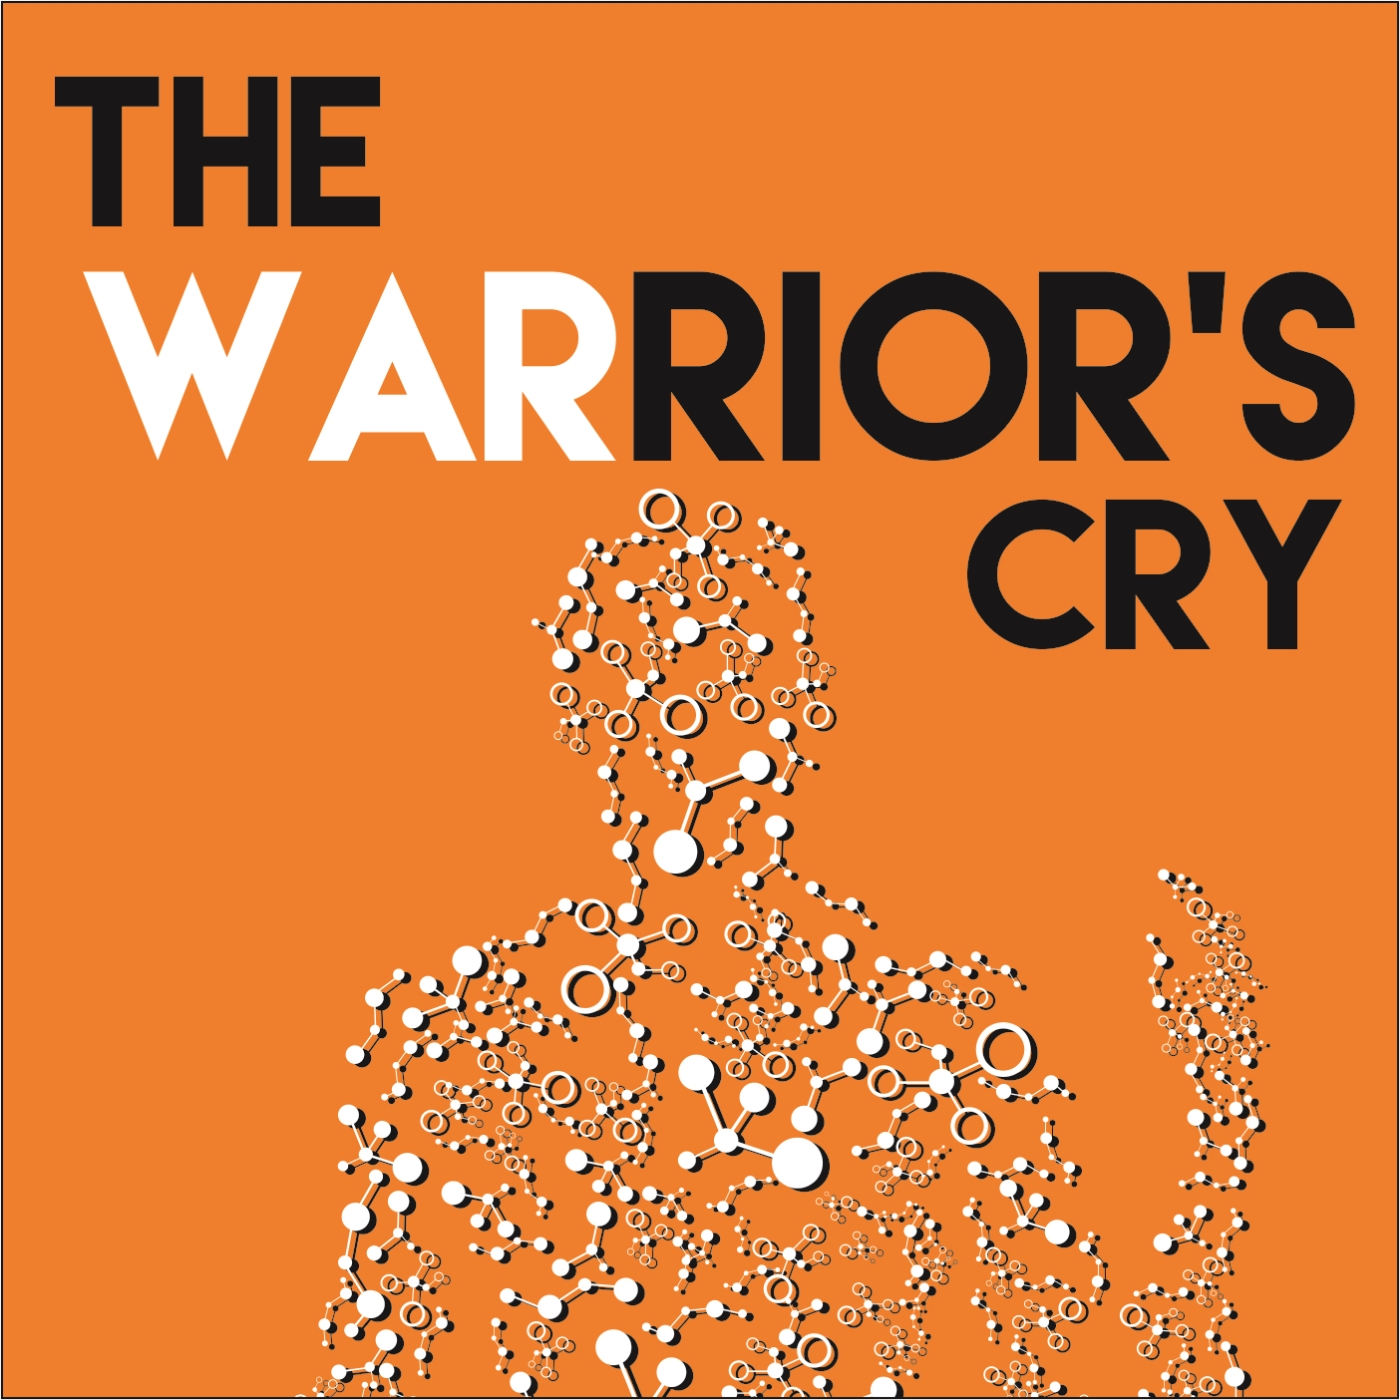 The Warrior's Cry Podcast - The Warrior's Cry